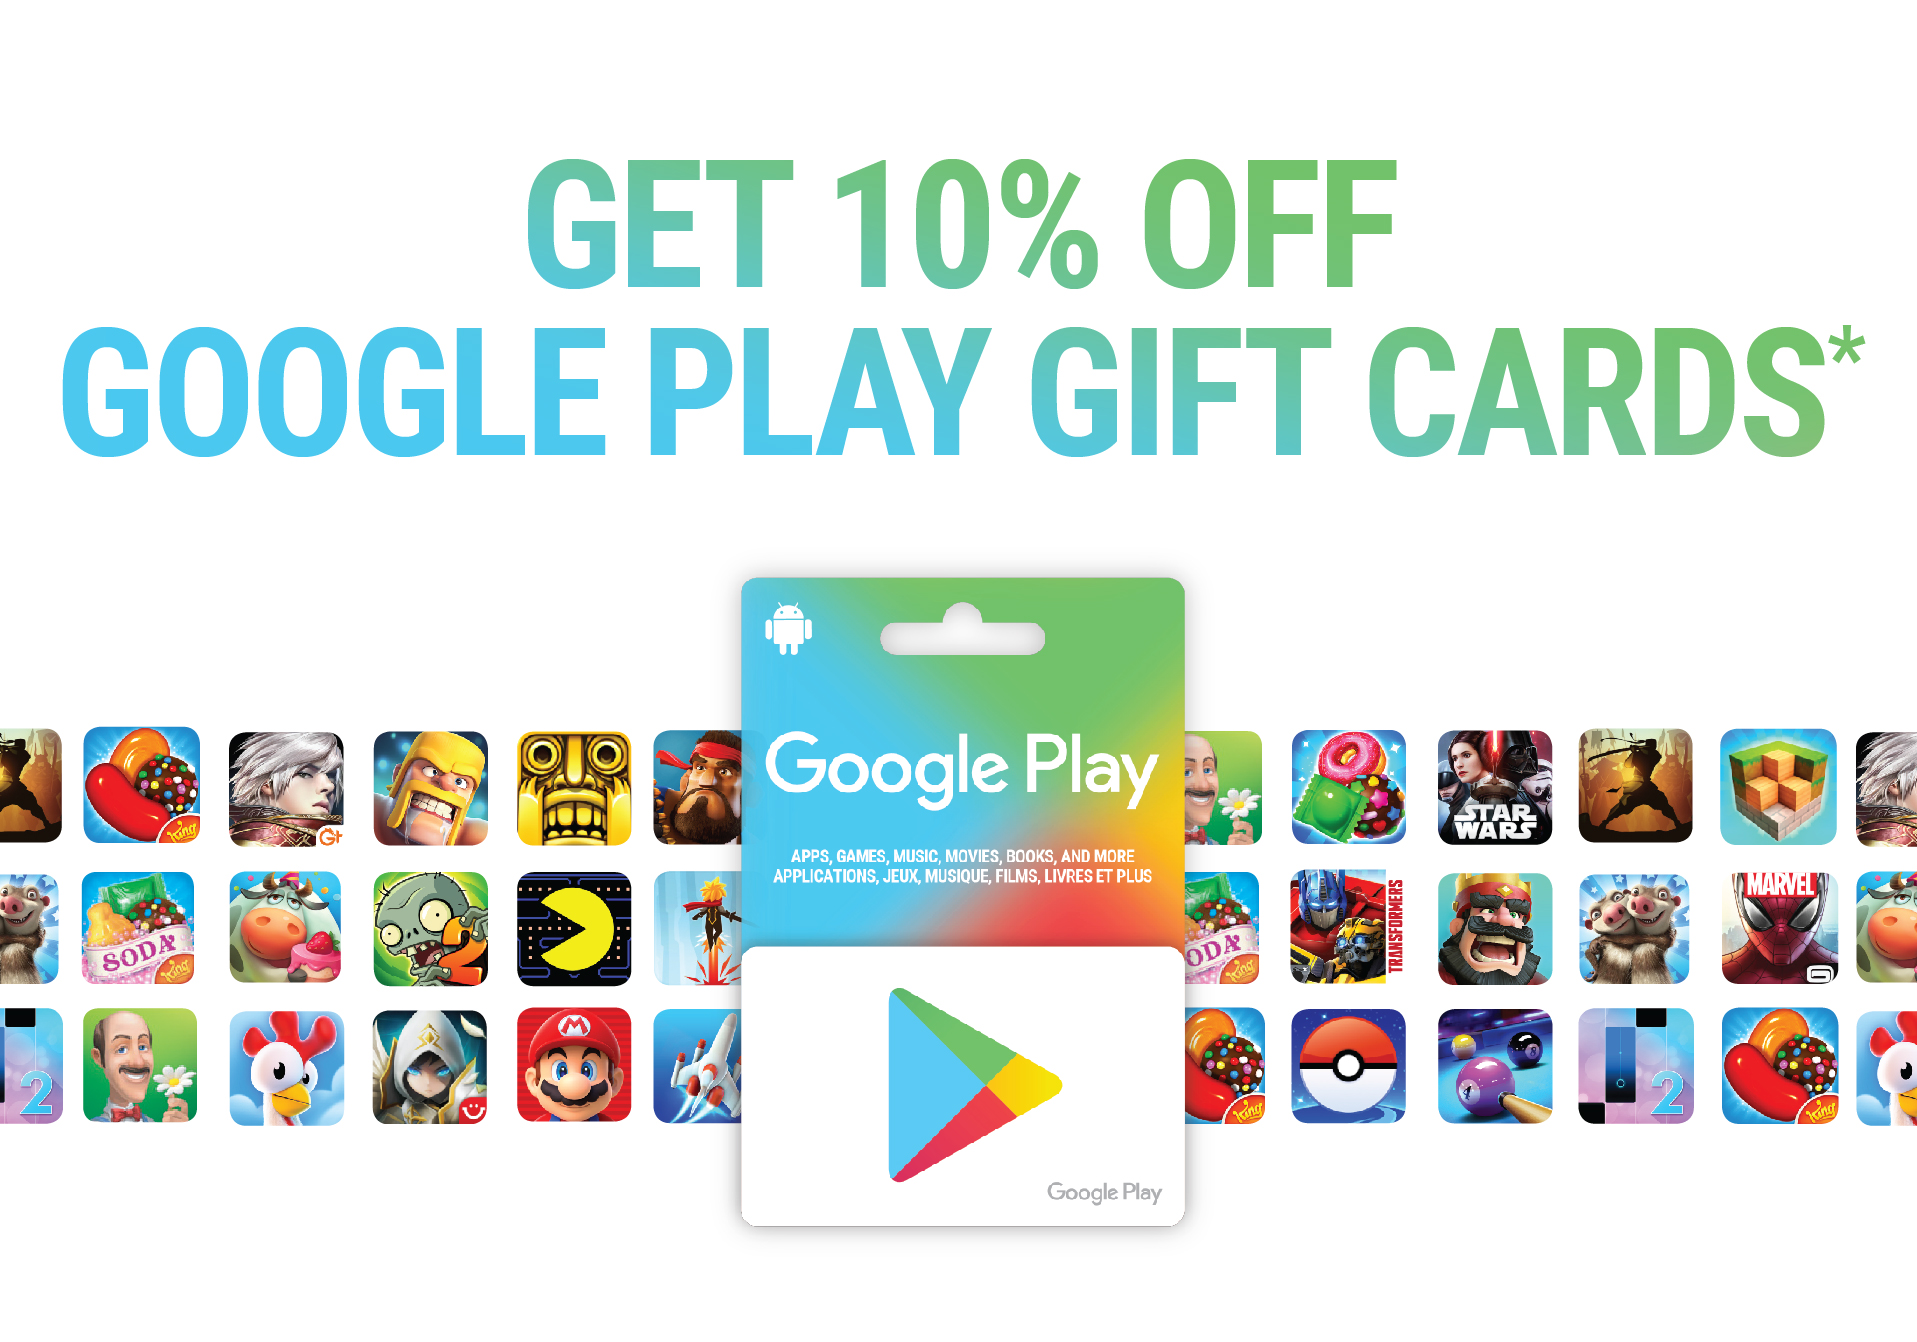 Get 10% off Google Play Gift Cards*